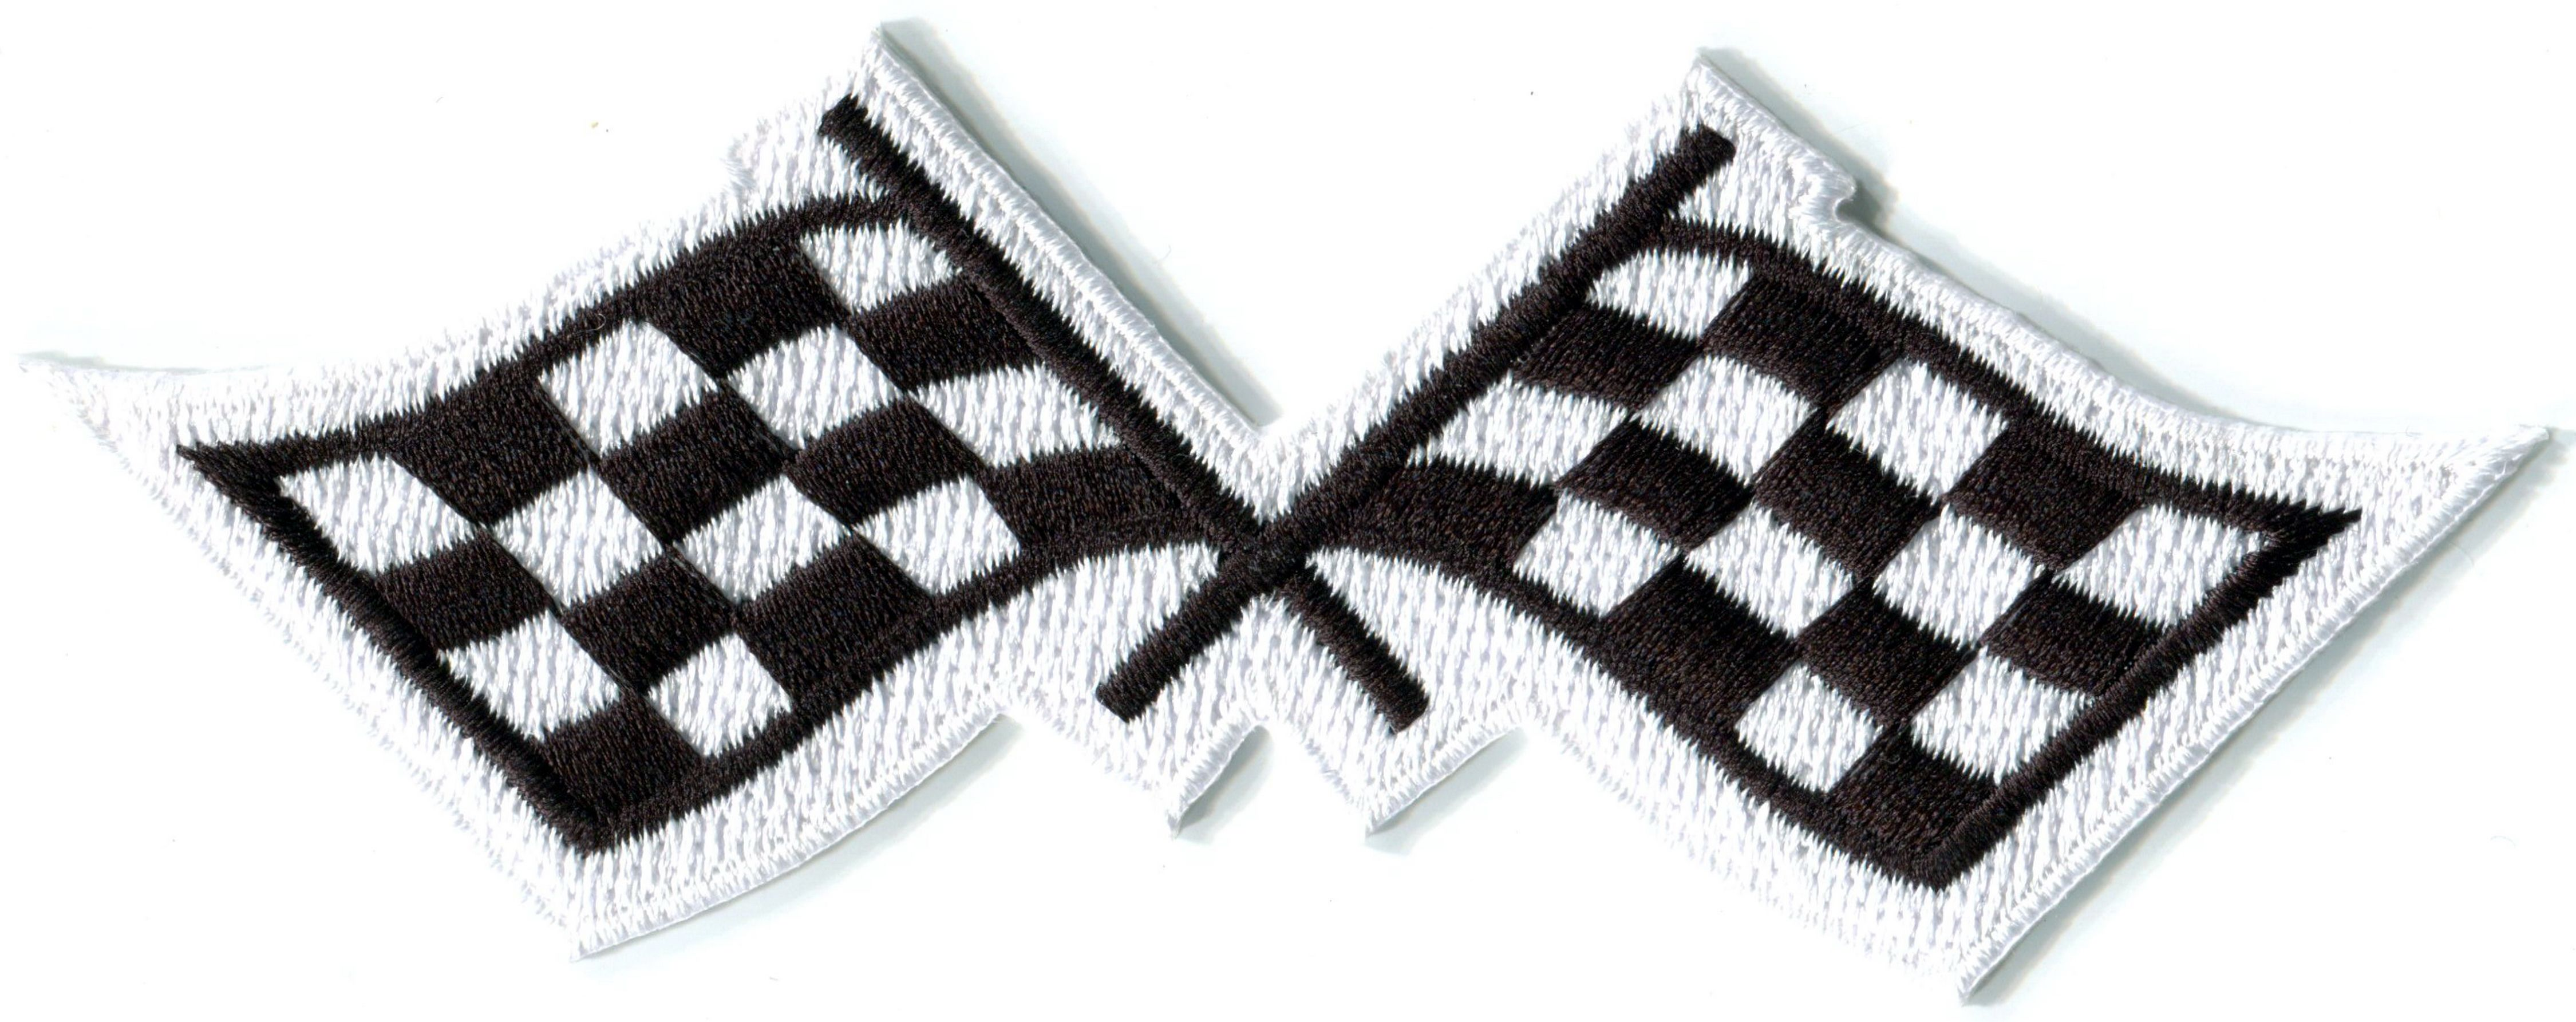 Racing Flags Medium Crossed//Checkered Iron on Applique//Embroidered Patch